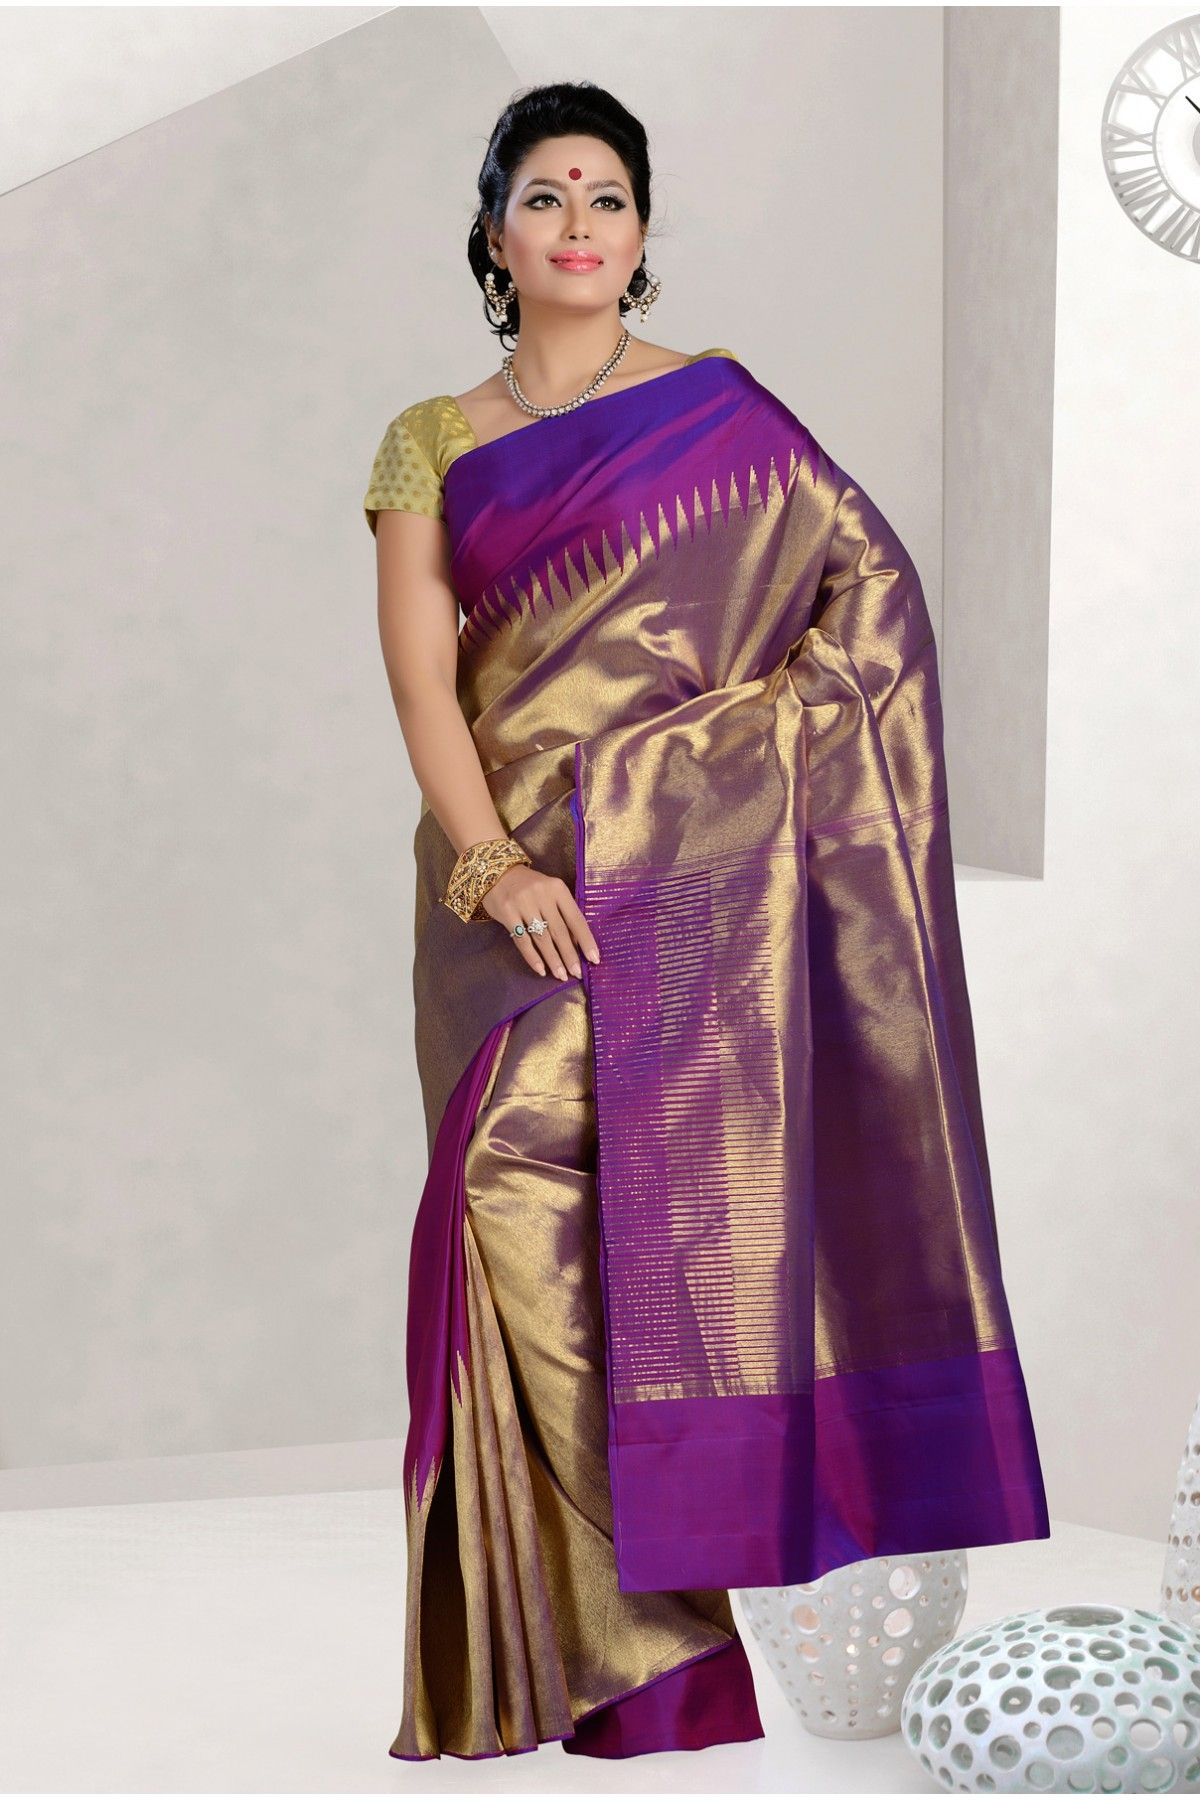 de48507d3 Pure silk purple fashionable saree with gold border -SR10329 - Pure  Kanchipuram Tested Zari -